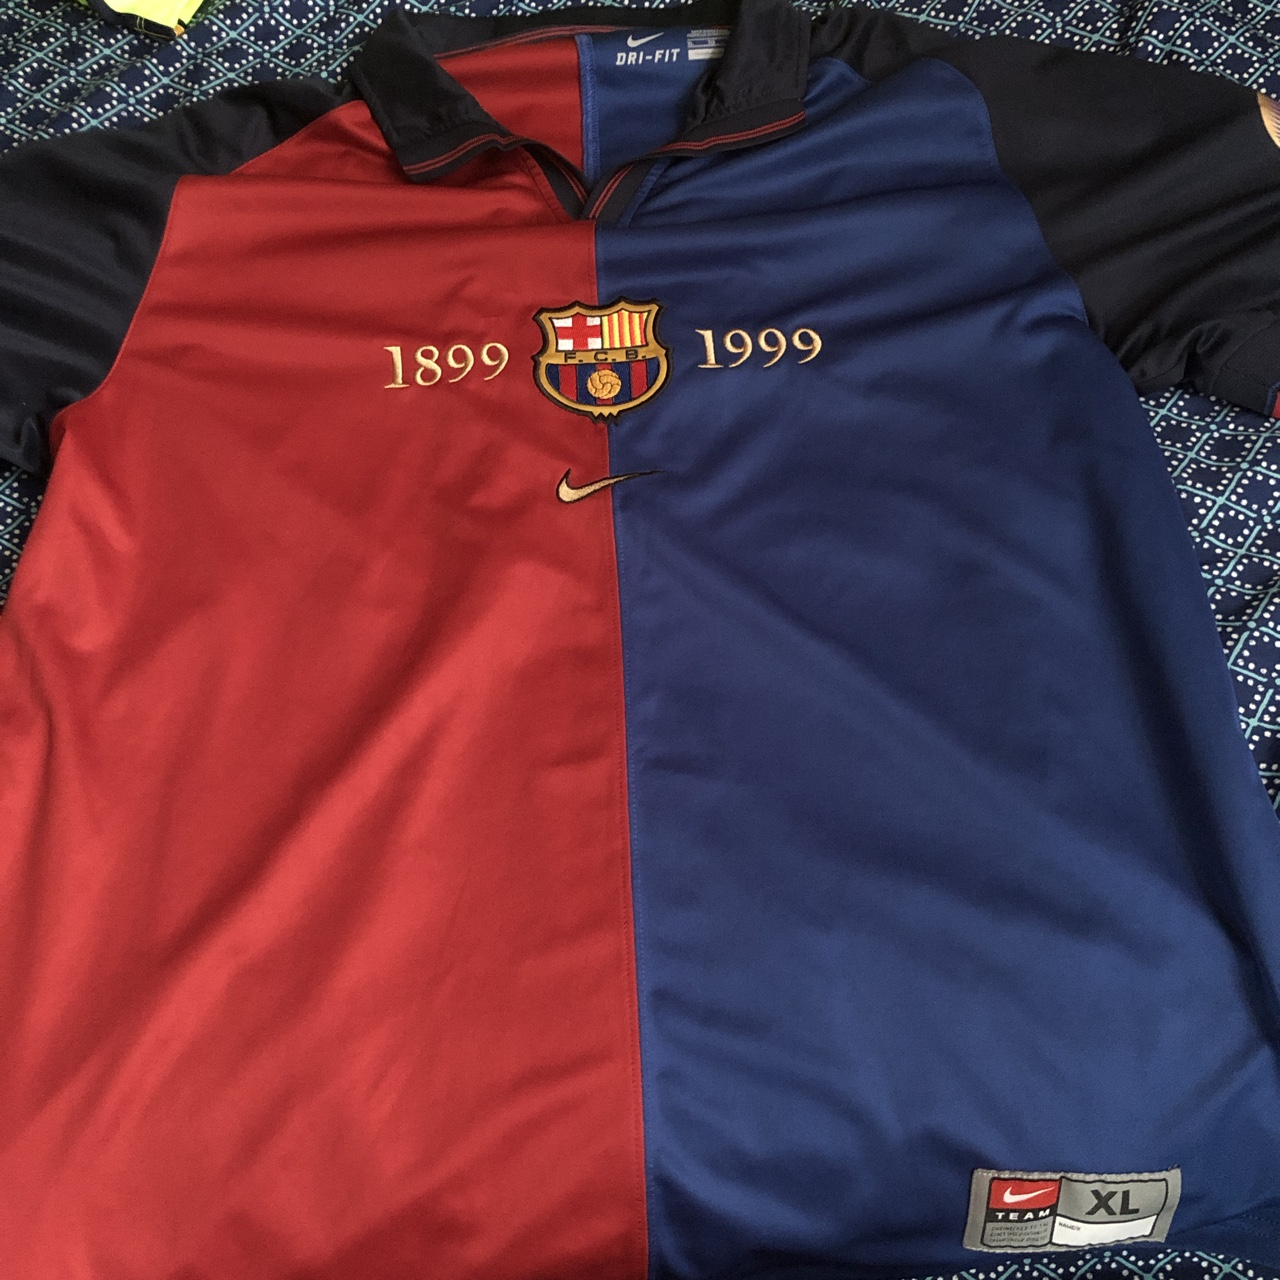 super popular 2ce6a 335a9 Fc Barcelona 1899/1999 jersey. It's an XL, good... - Depop